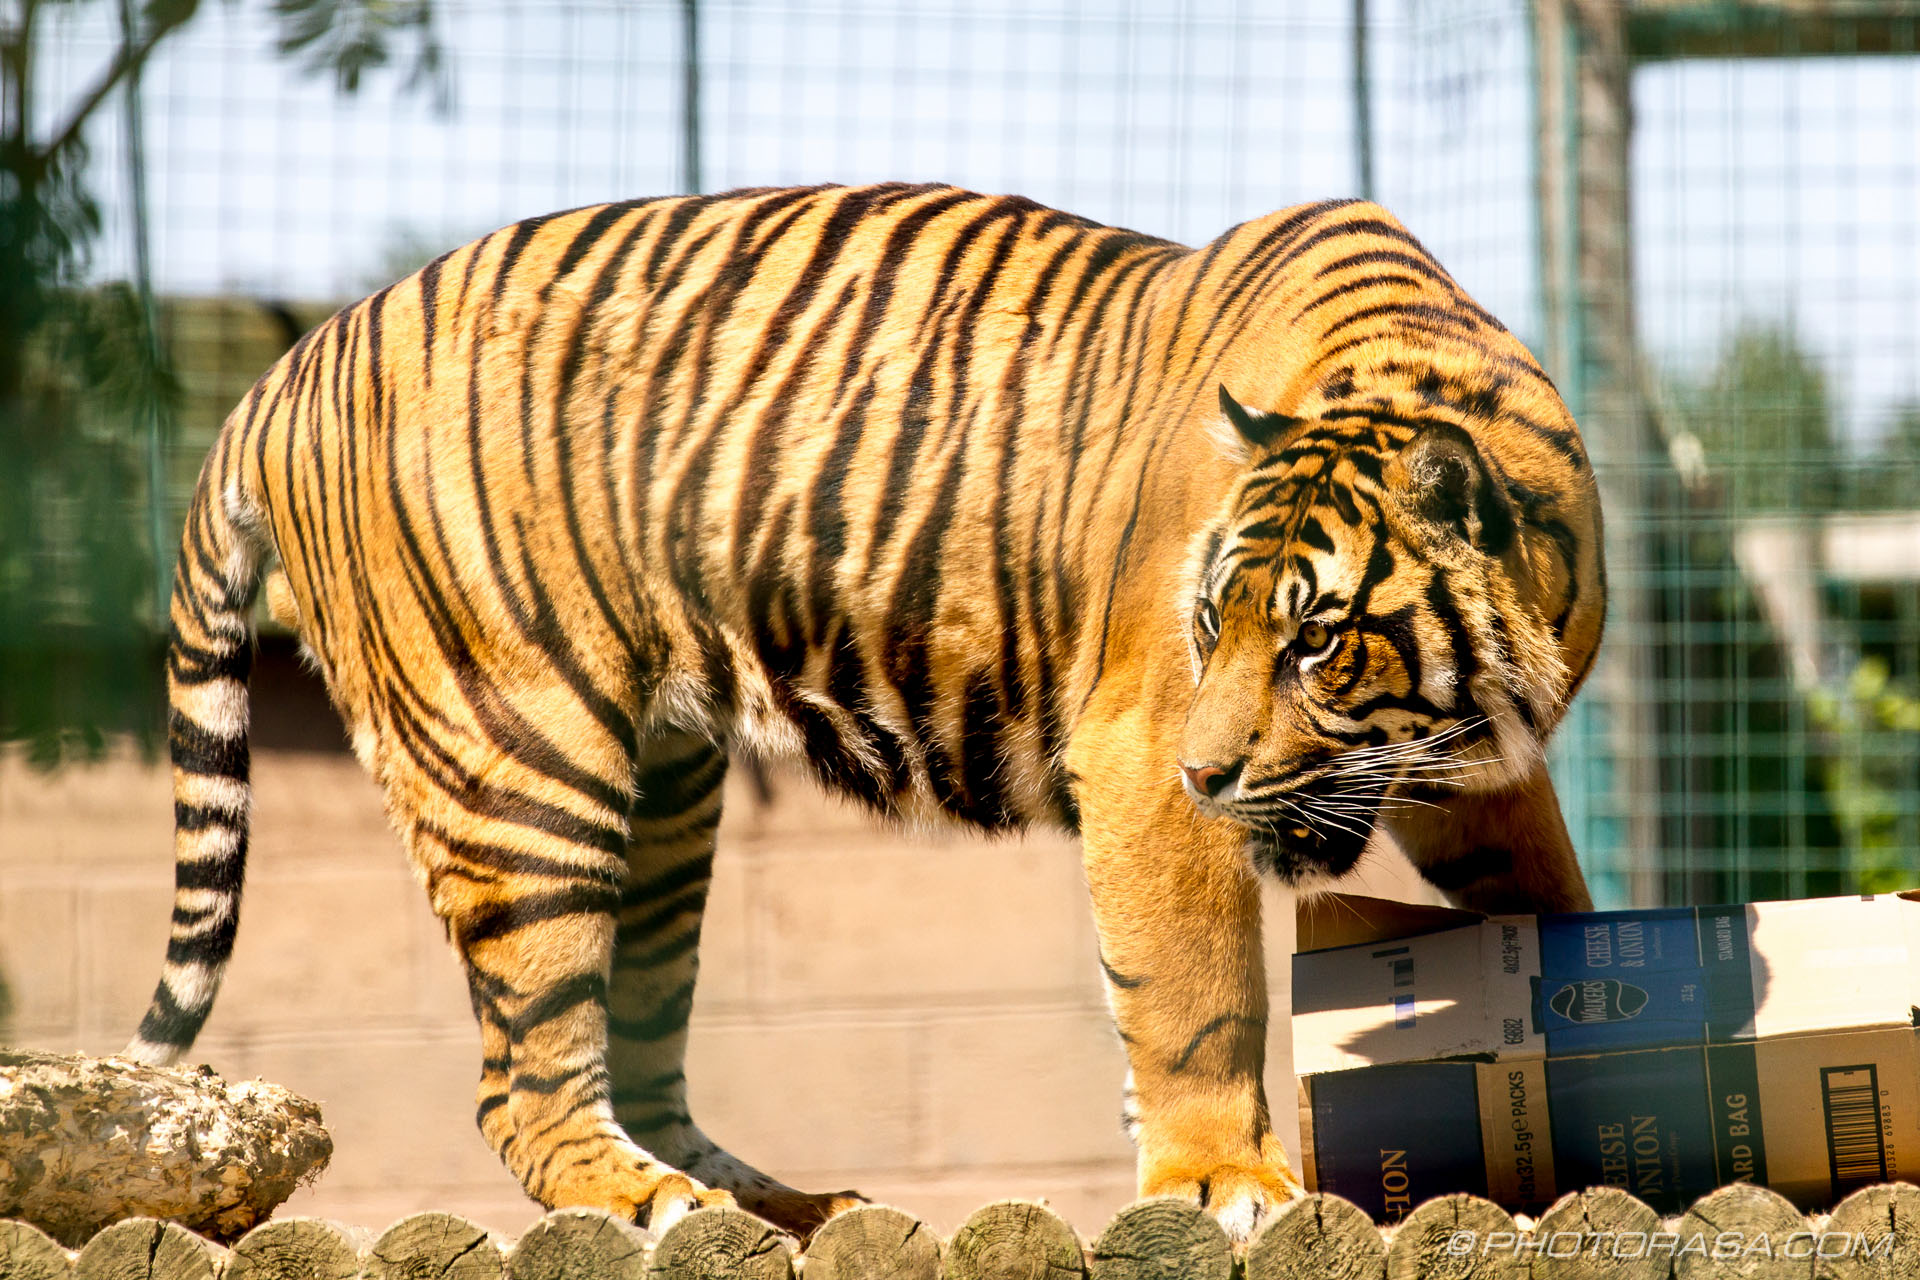 http://photorasa.com/bengal-tiger/tiger-gets-food/